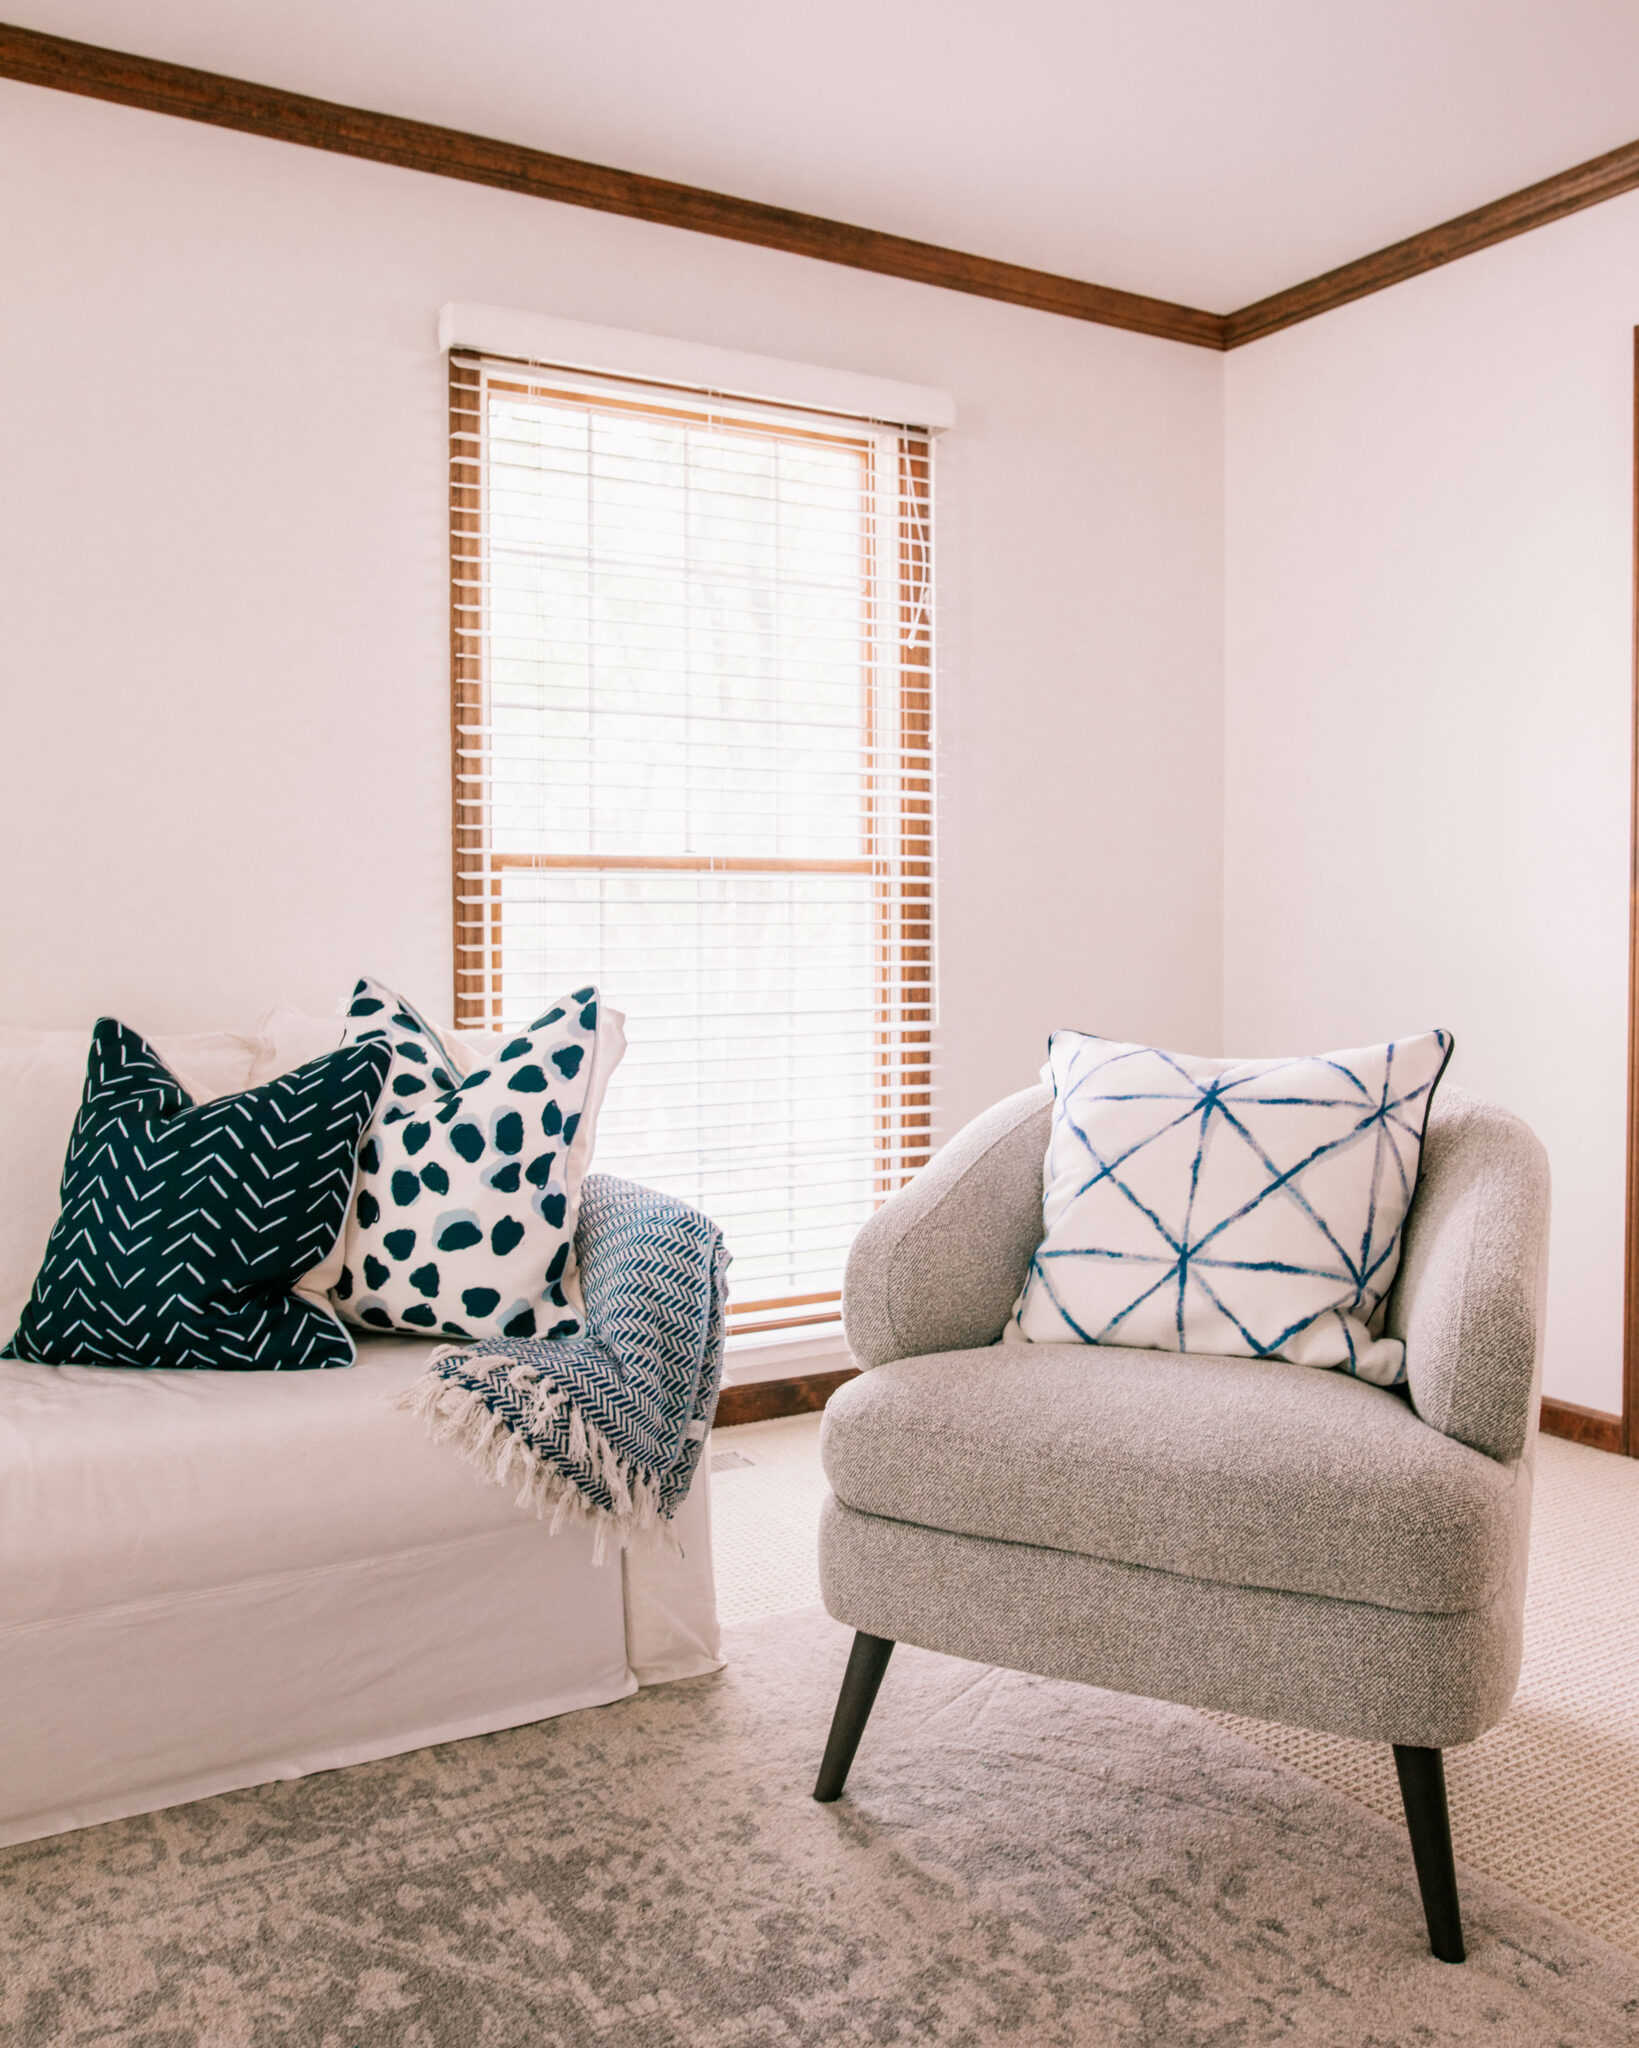 Thomasville Furniture by popular Chicago life and style blog, Glass of Glam: image of living room decorated with a white couch, blue, grey and white accent rug, grey armchair, and blue and white throw pillows.